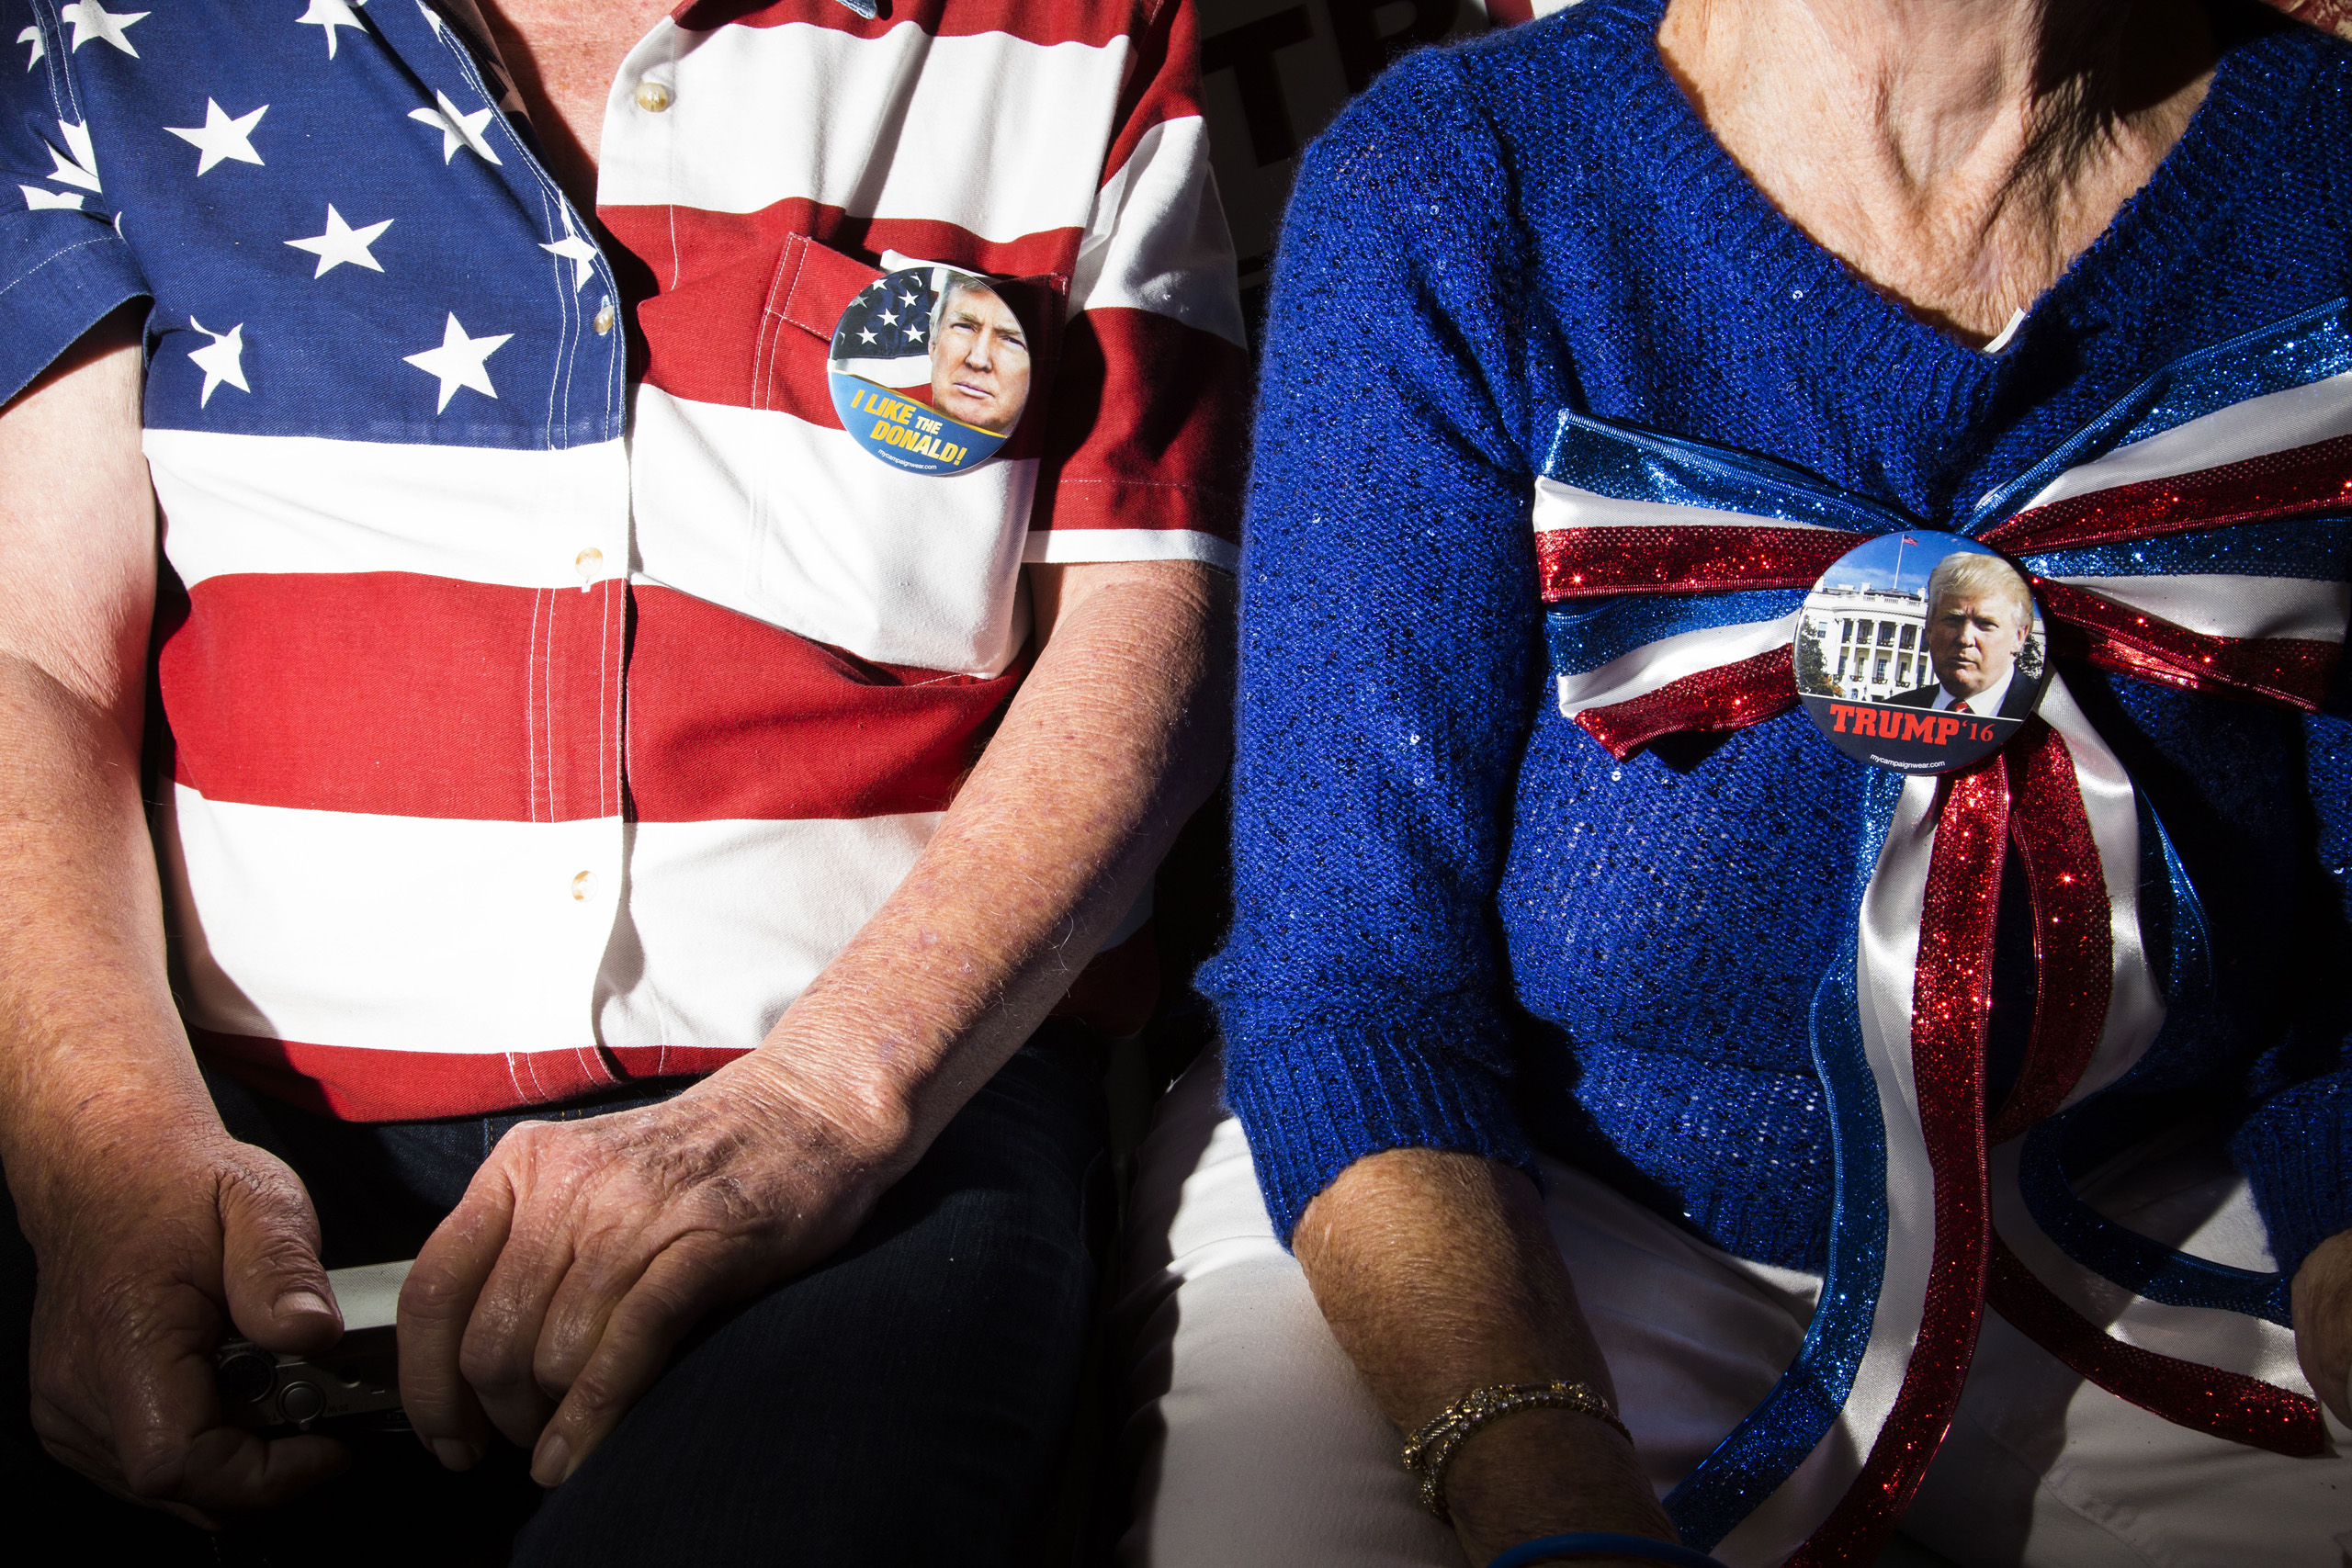 Supporters of  Republican presidential candidate Donald Trump at a rally in Sarasota, Fla. Nov. 28, 2015.